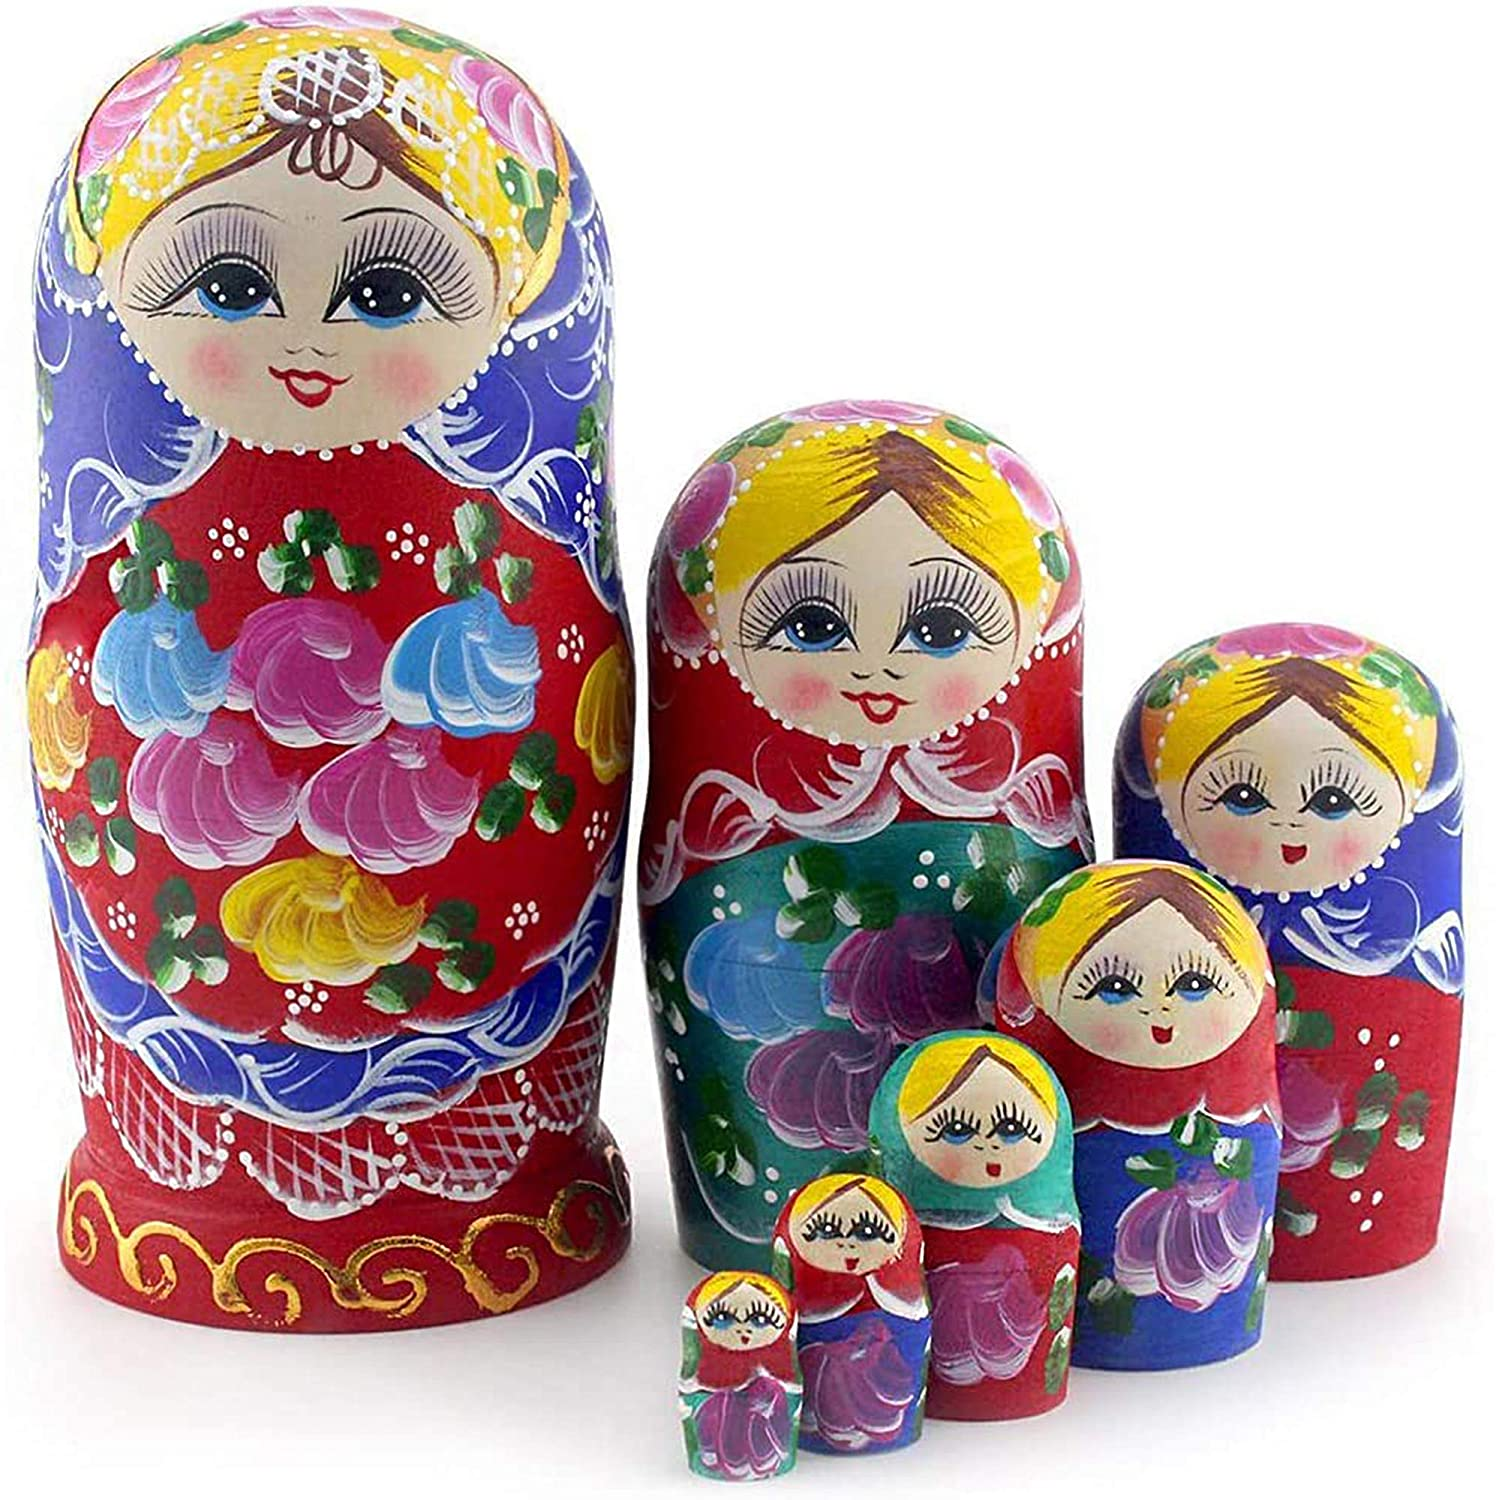 Starxing Russian Nesting Dolls Matryoshka Nested S Al sold out. New item Wood Stacking